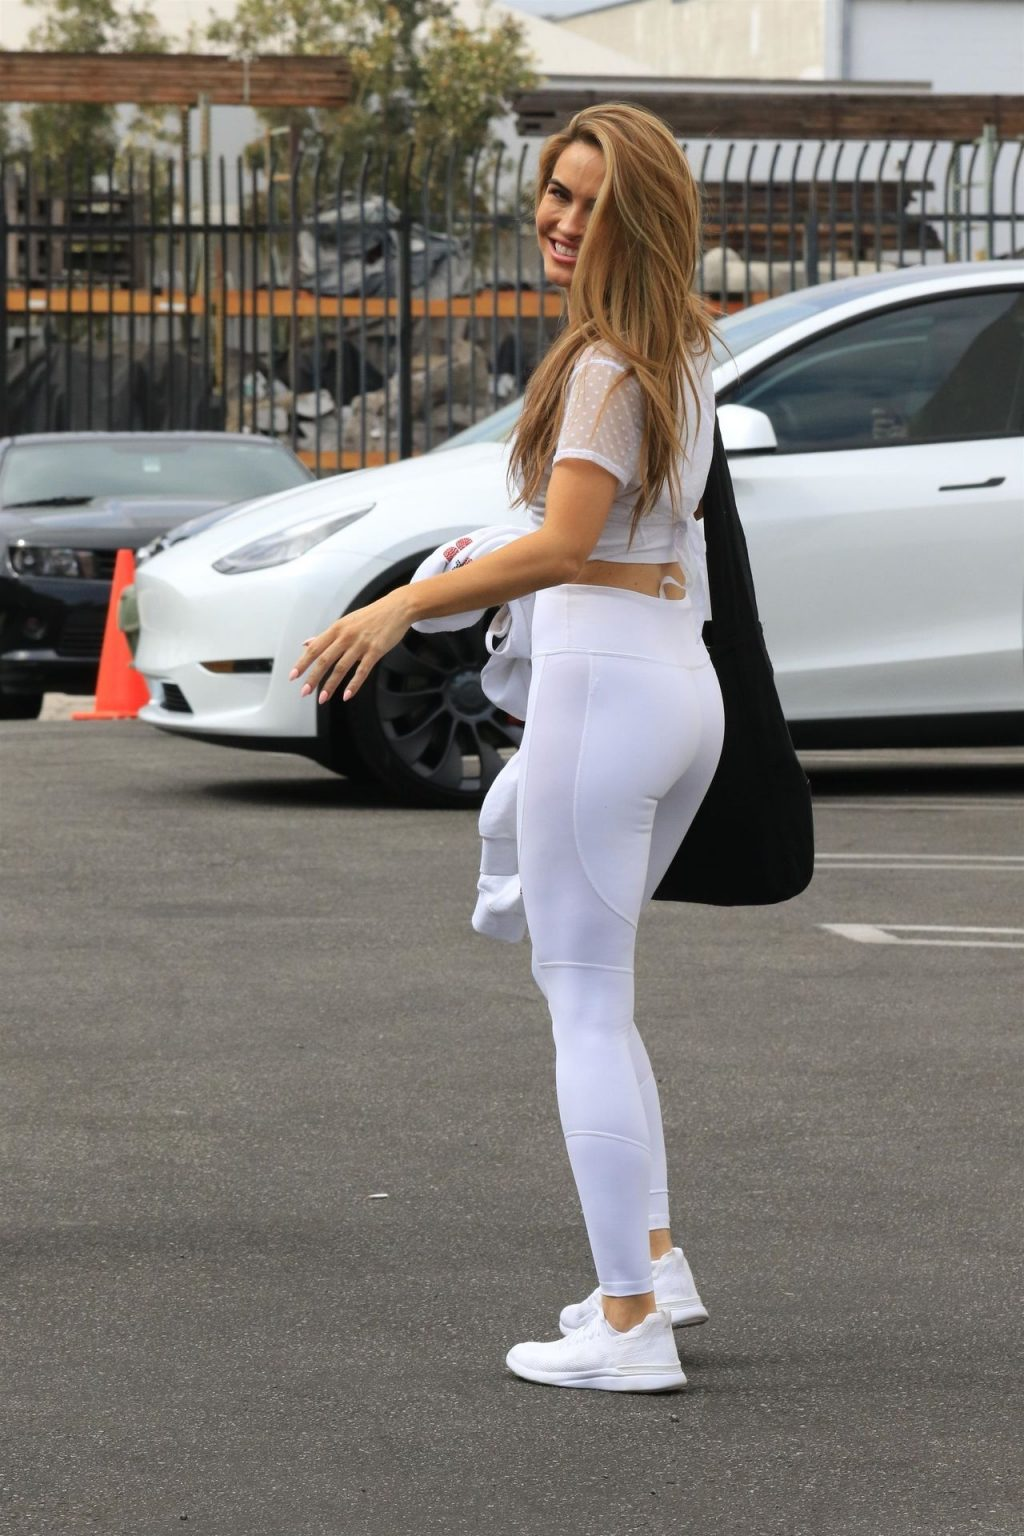 Chrishell Stause is All Smiles as She Finishes Her Saturday Practice (76 Photos)